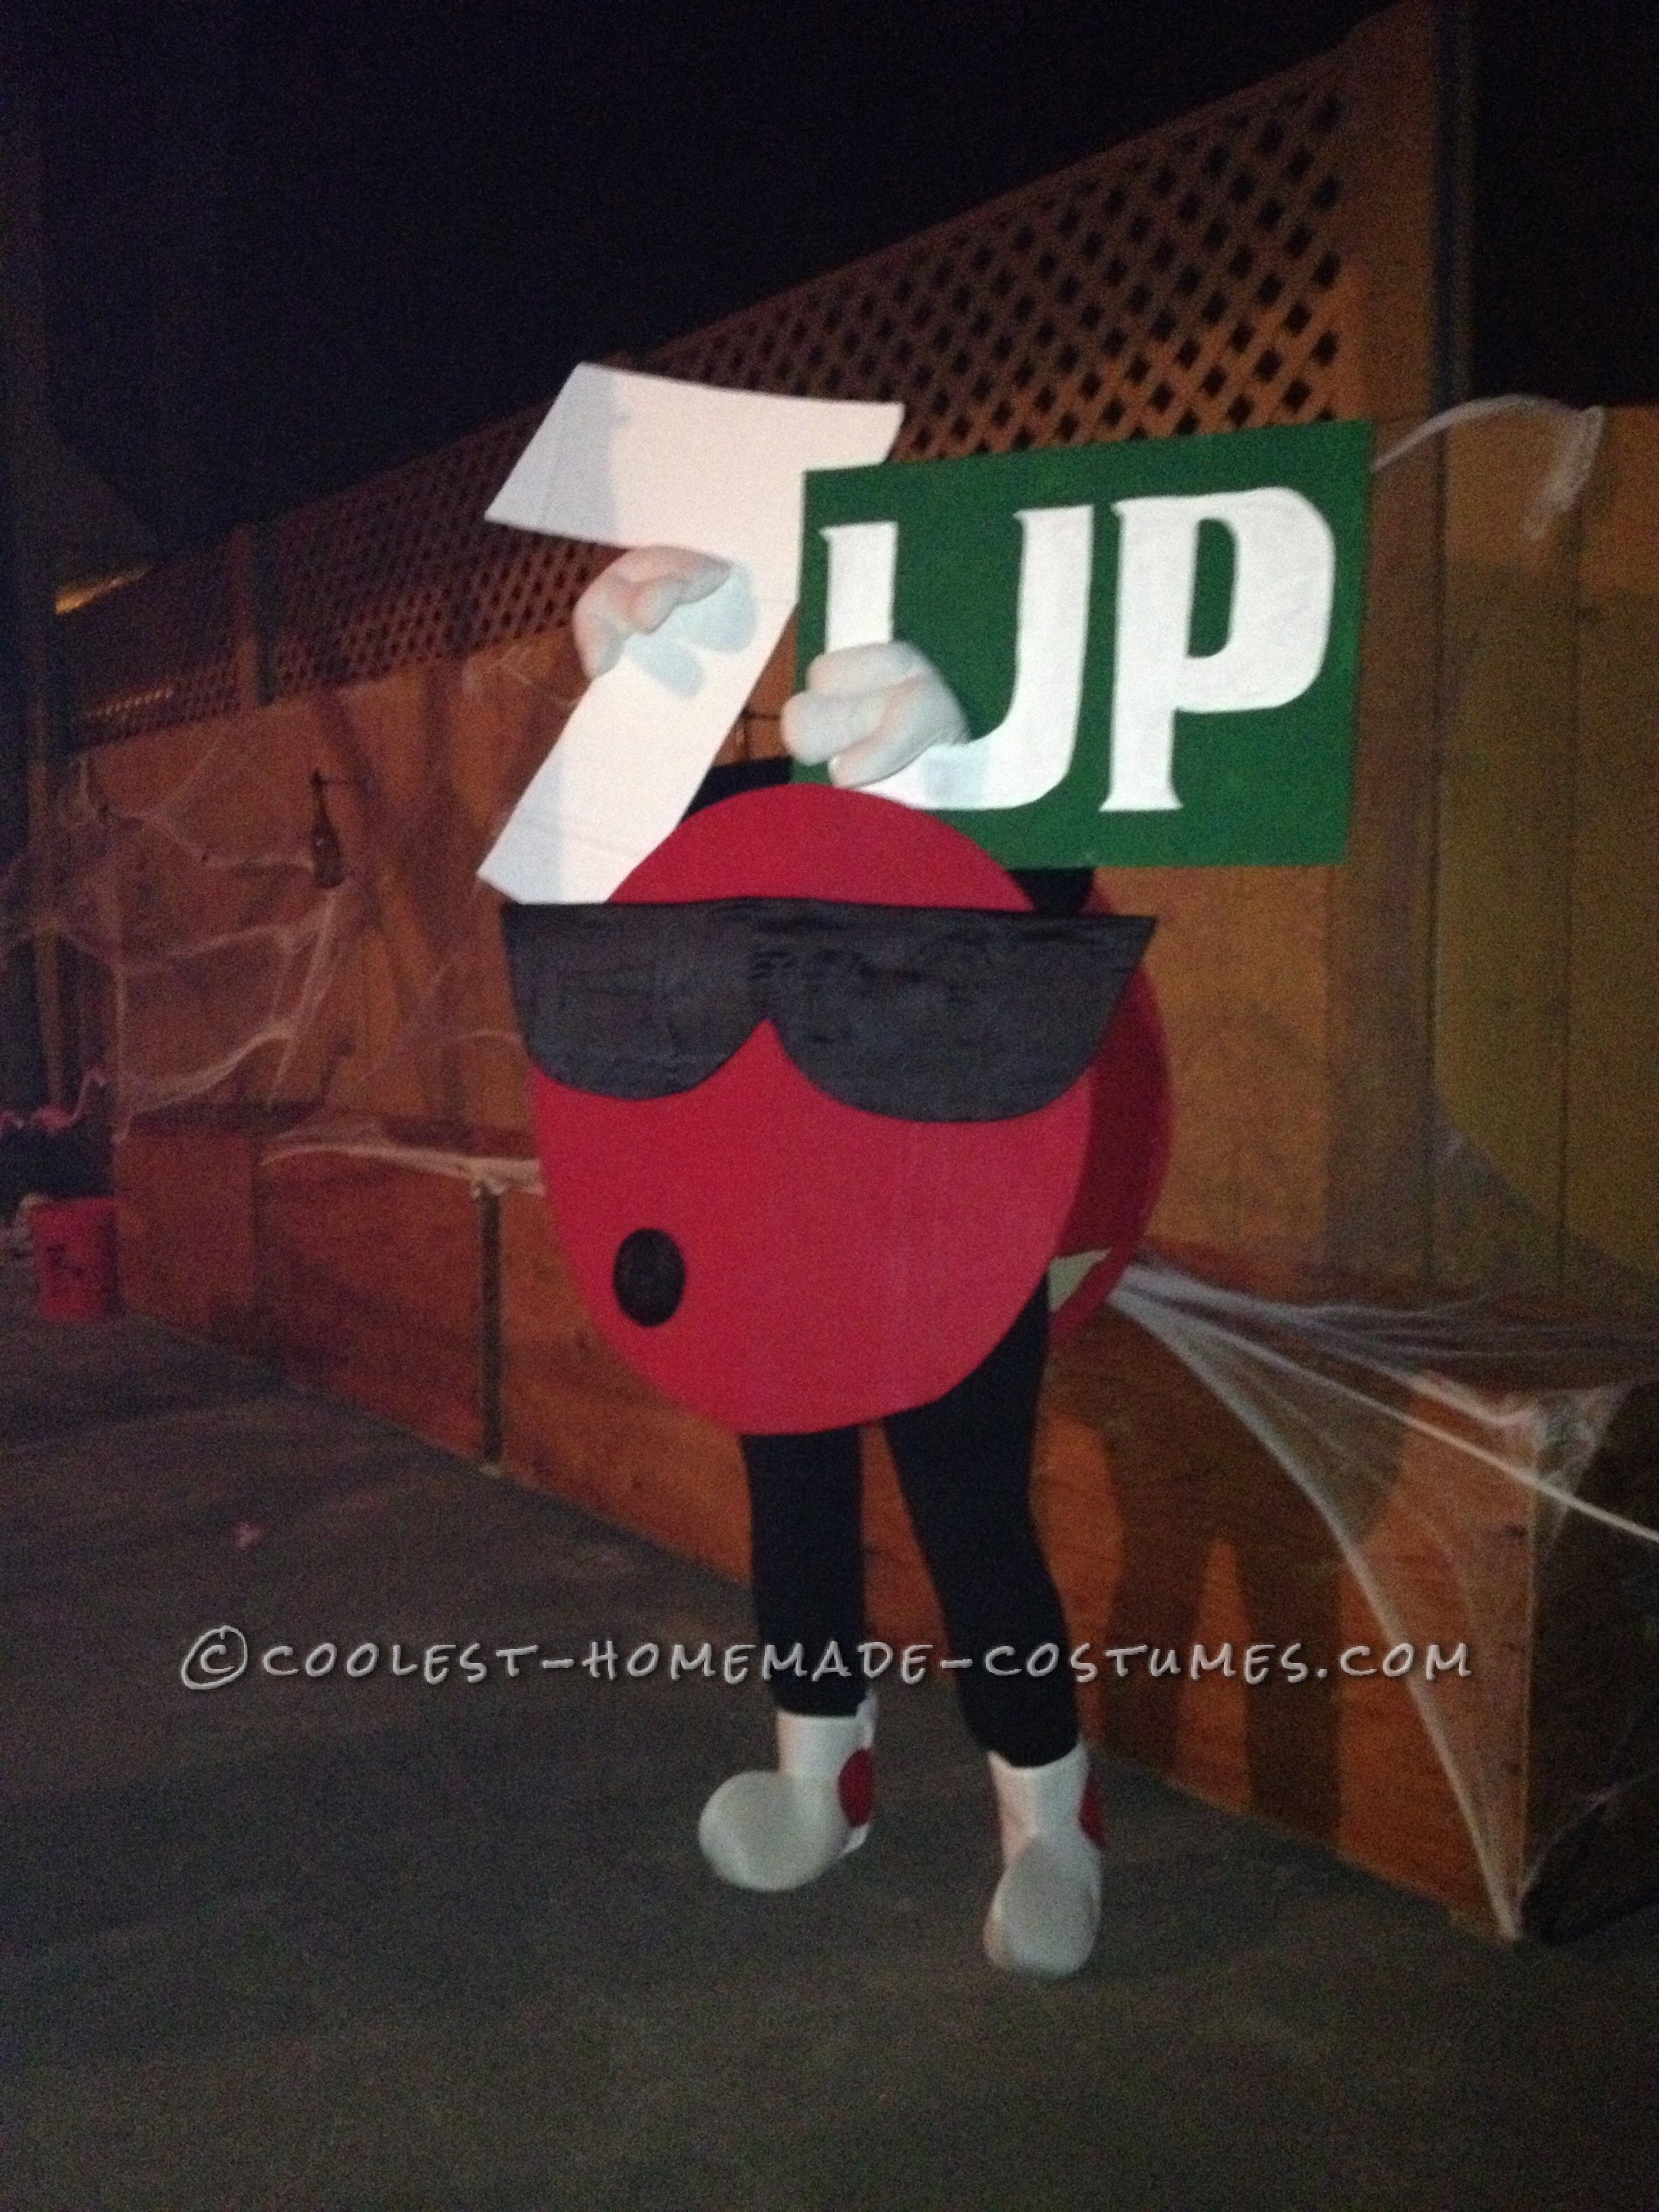 Pin On Coolest Homemade Costumes